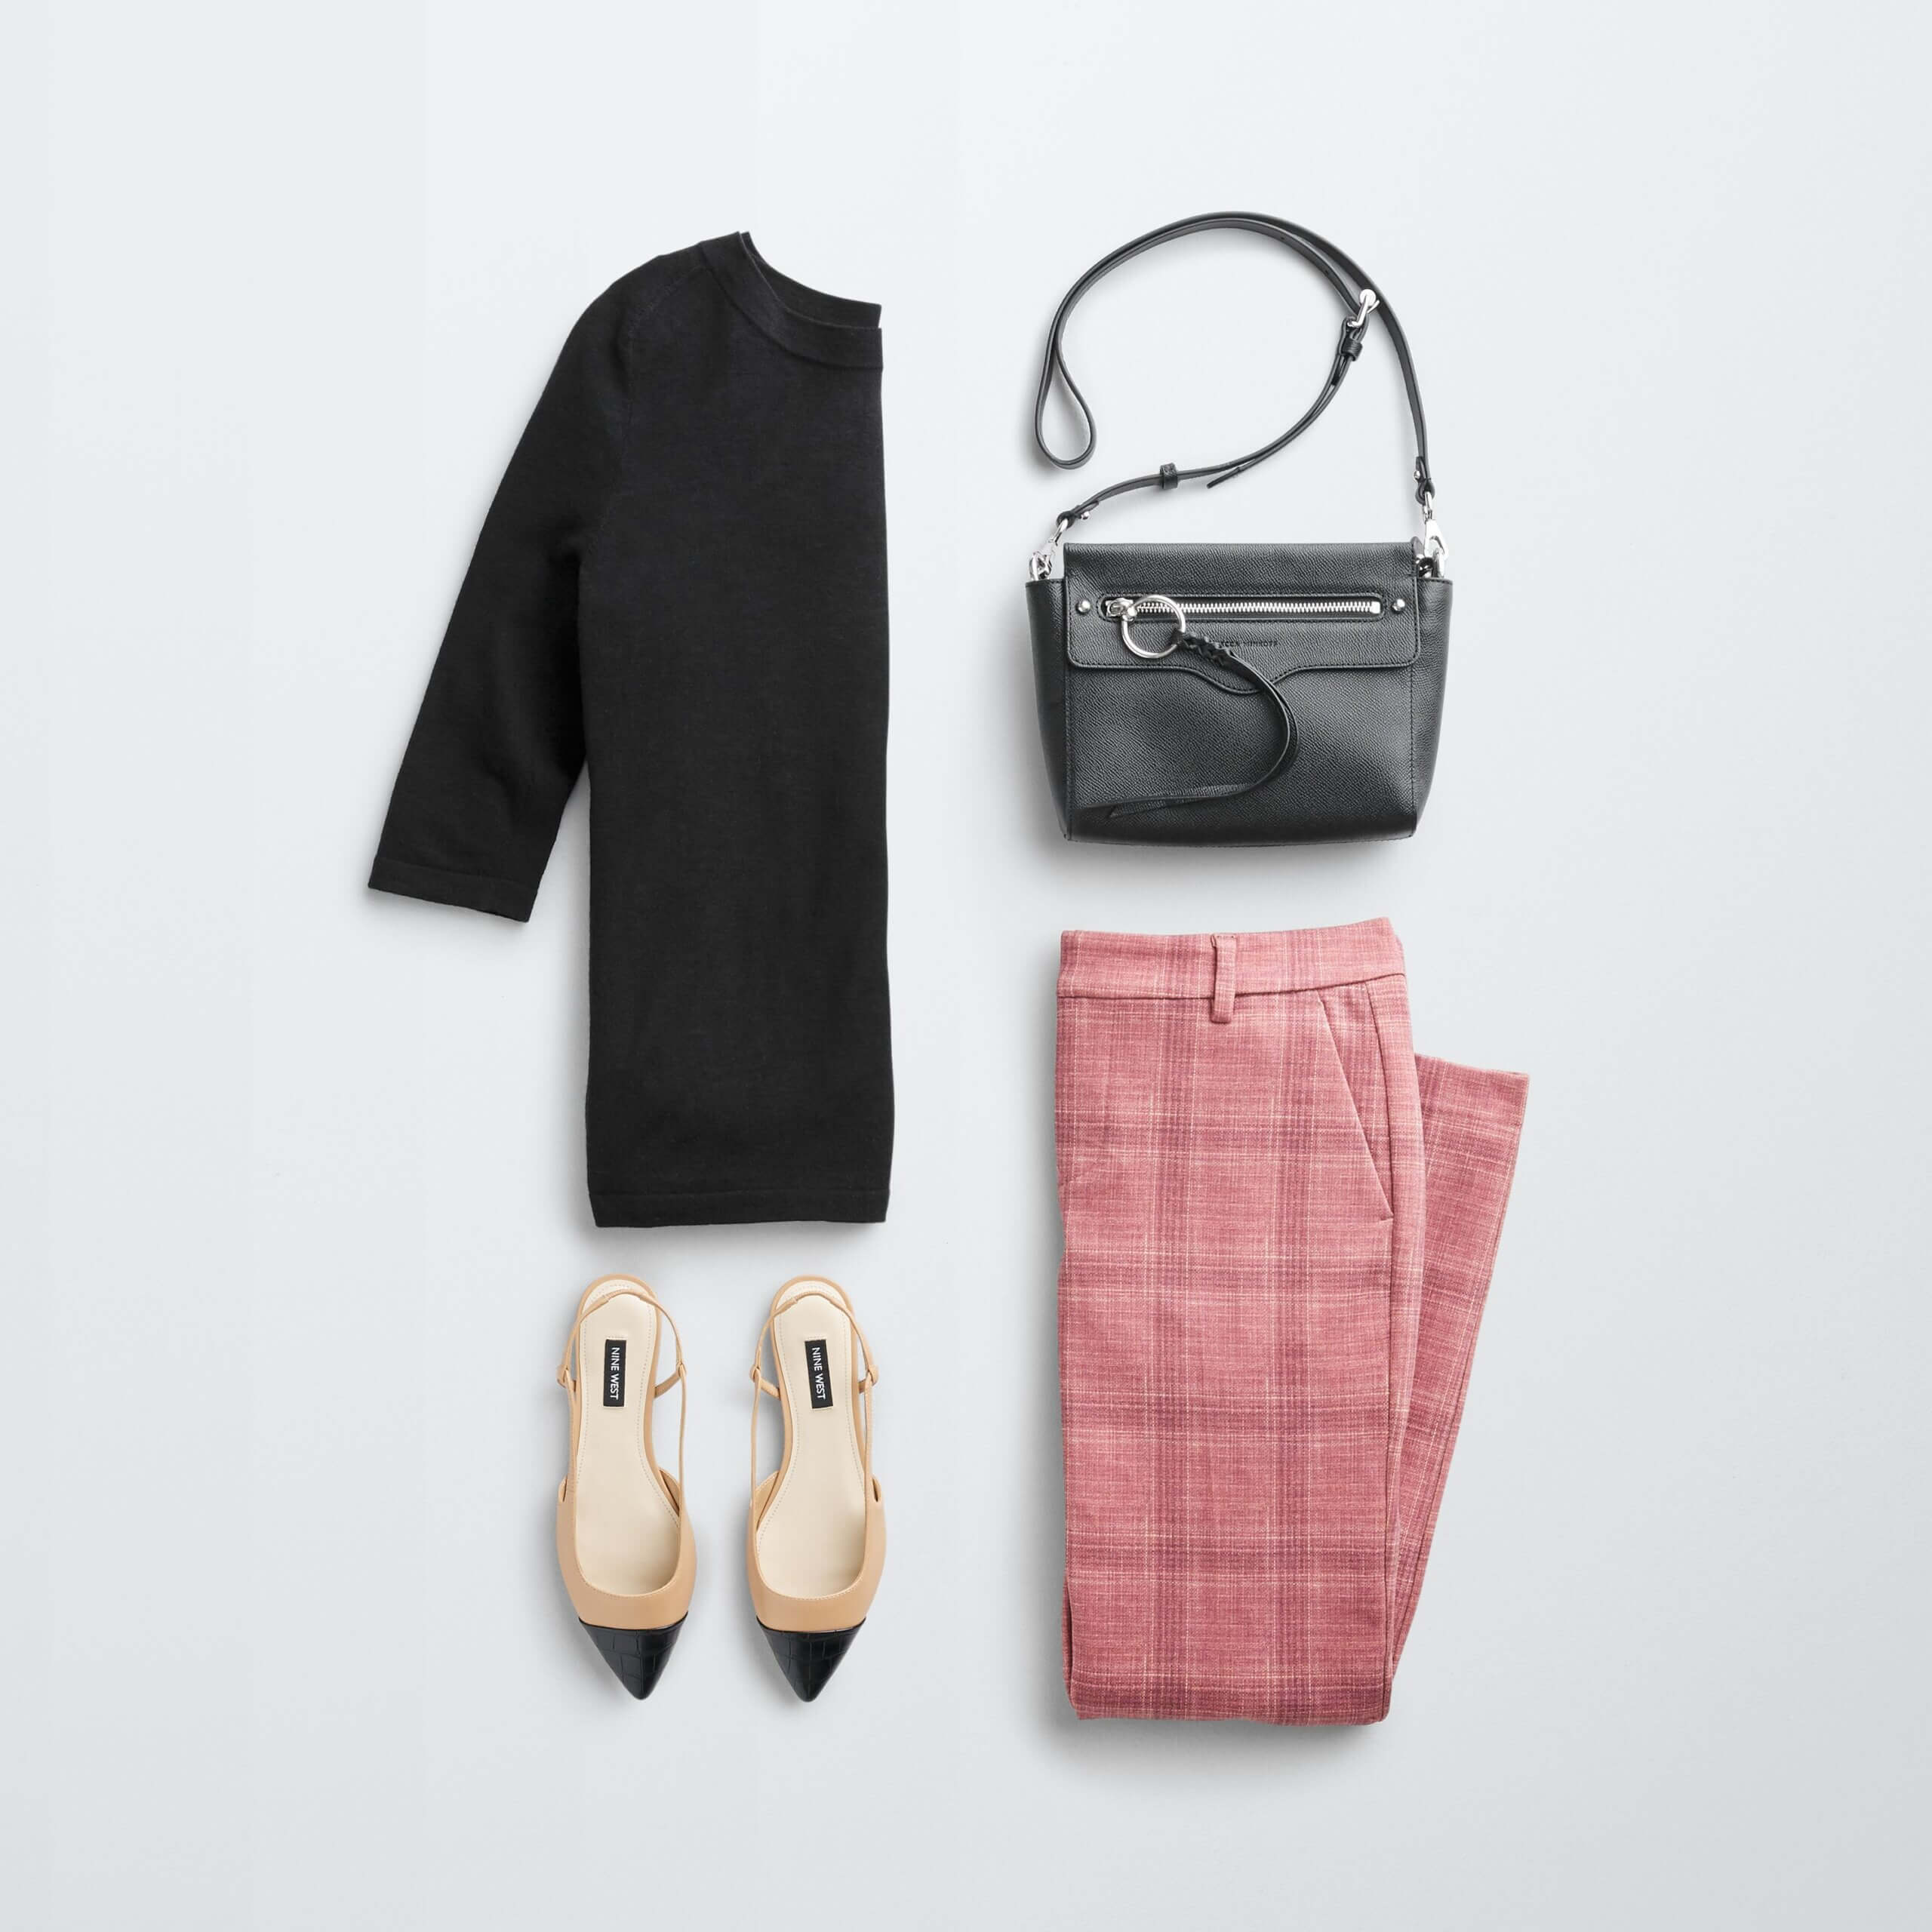 Stitch Fix Women's outfit laydown featuring pink windowpane patterned pants, black tunic, slingbacks and black bag.